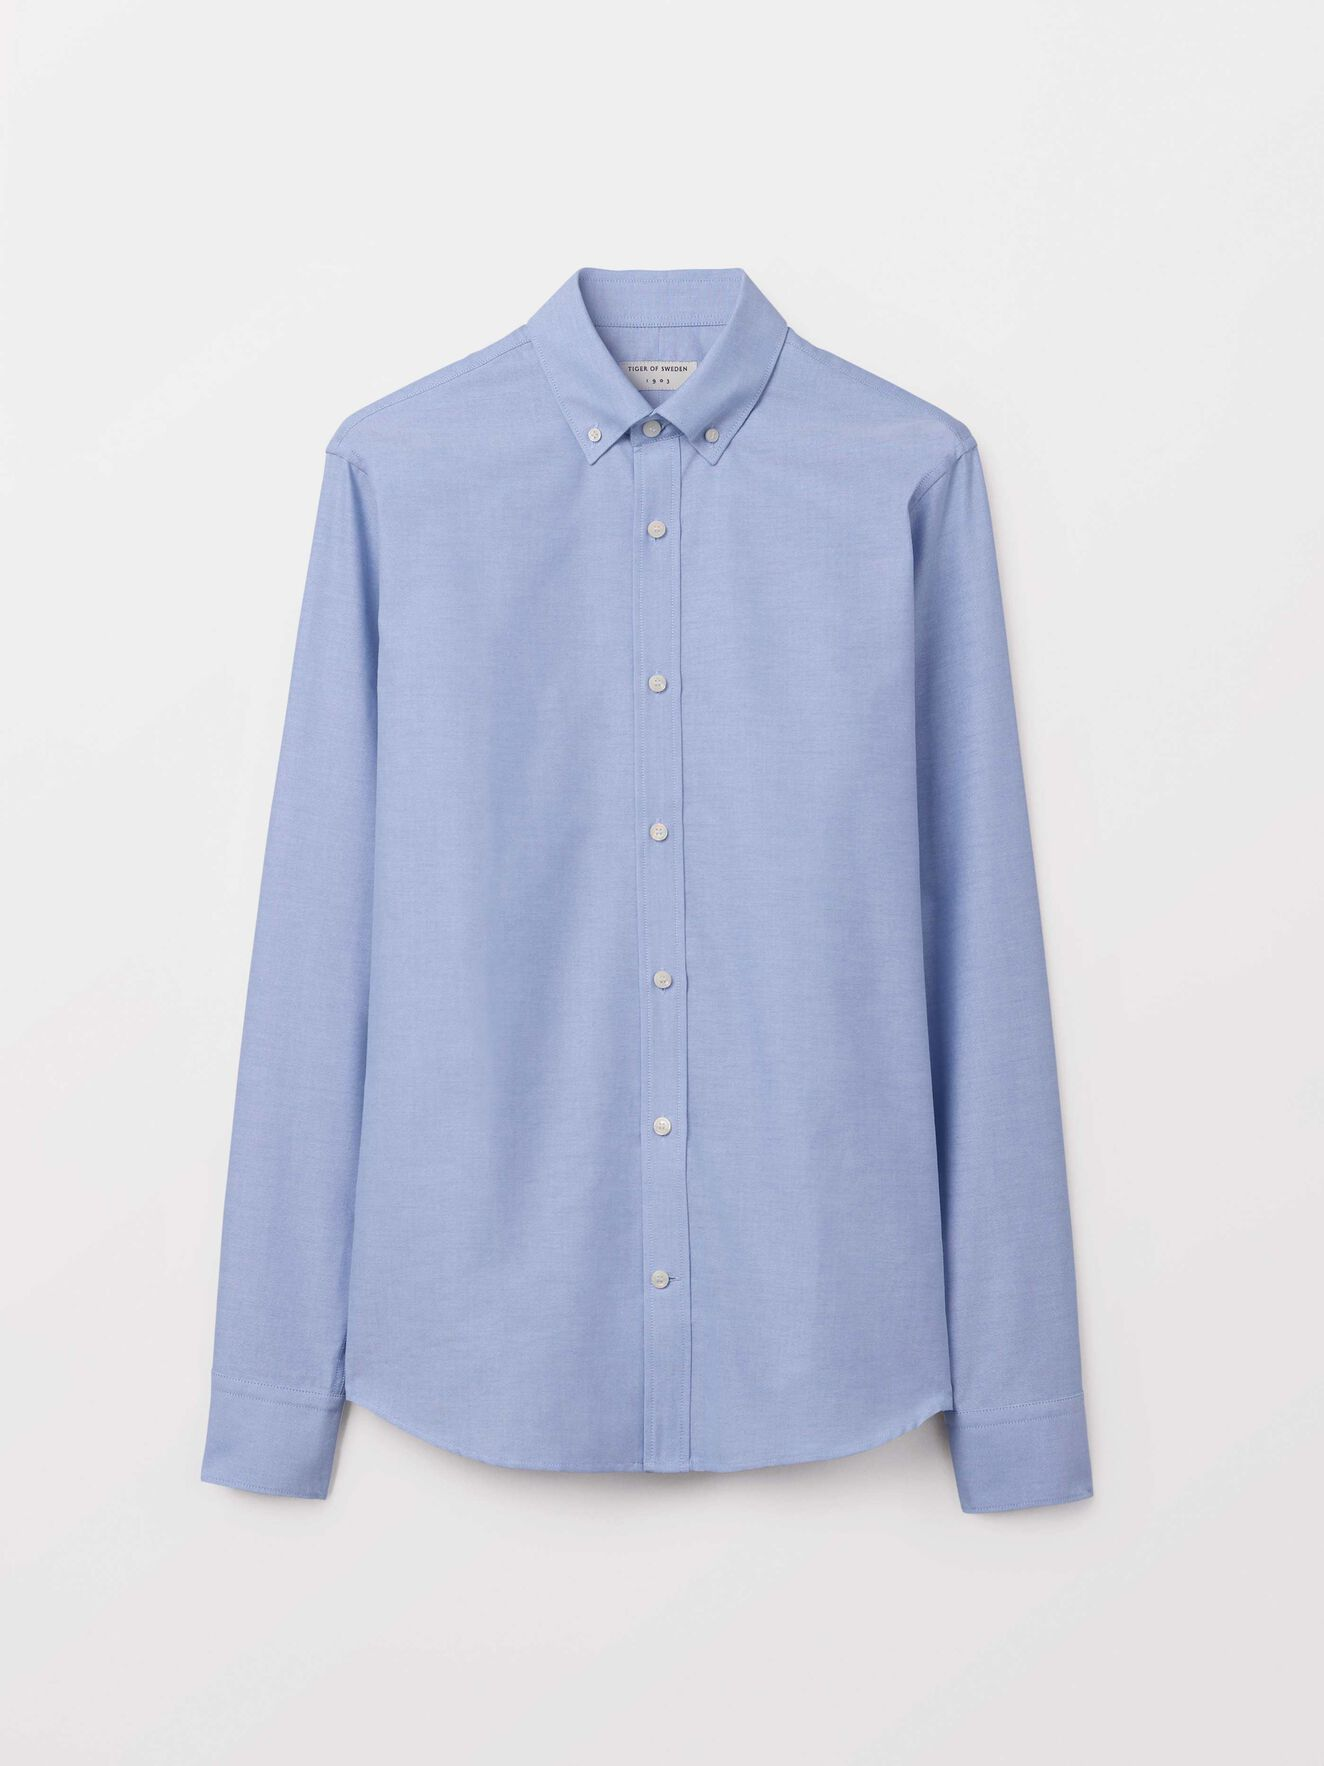 Fenald Shirt in Dust blue from Tiger of Sweden